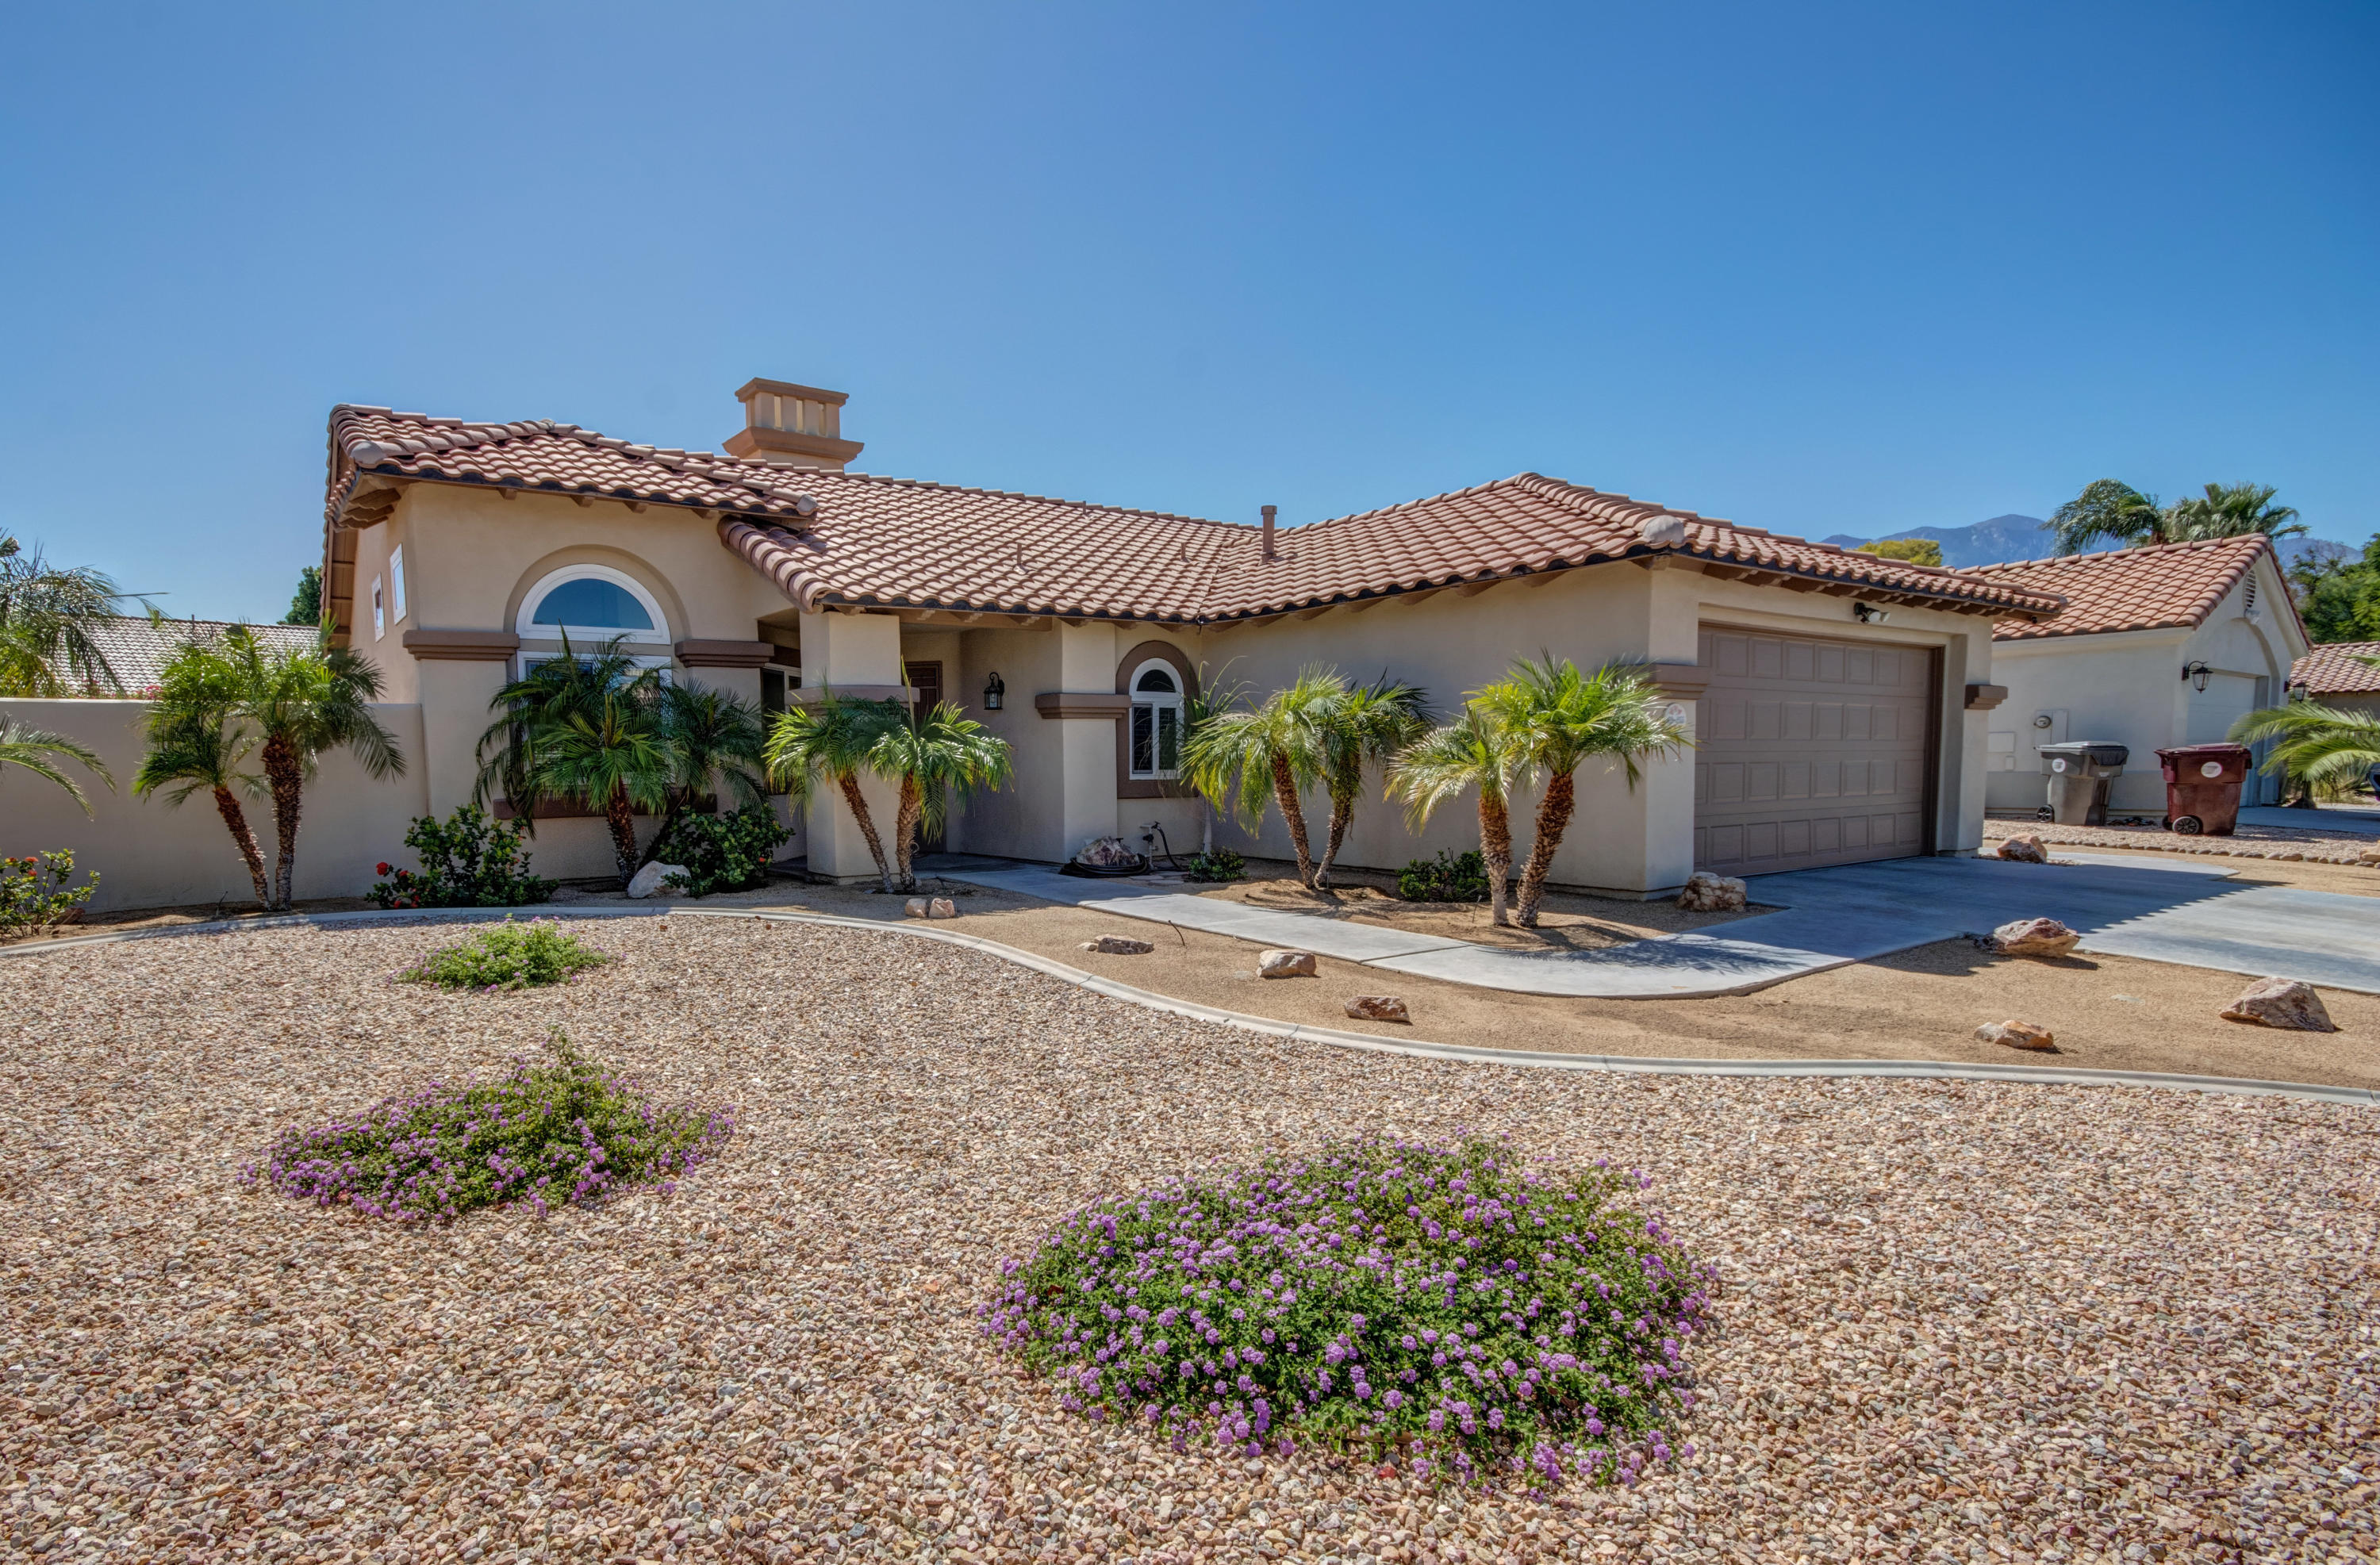 69255 Kemper Court, Cathedral City, California 92234, 2 Bedrooms Bedrooms, ,2 BathroomsBathrooms,Residential,Sold,69255 Kemper Court,219030363